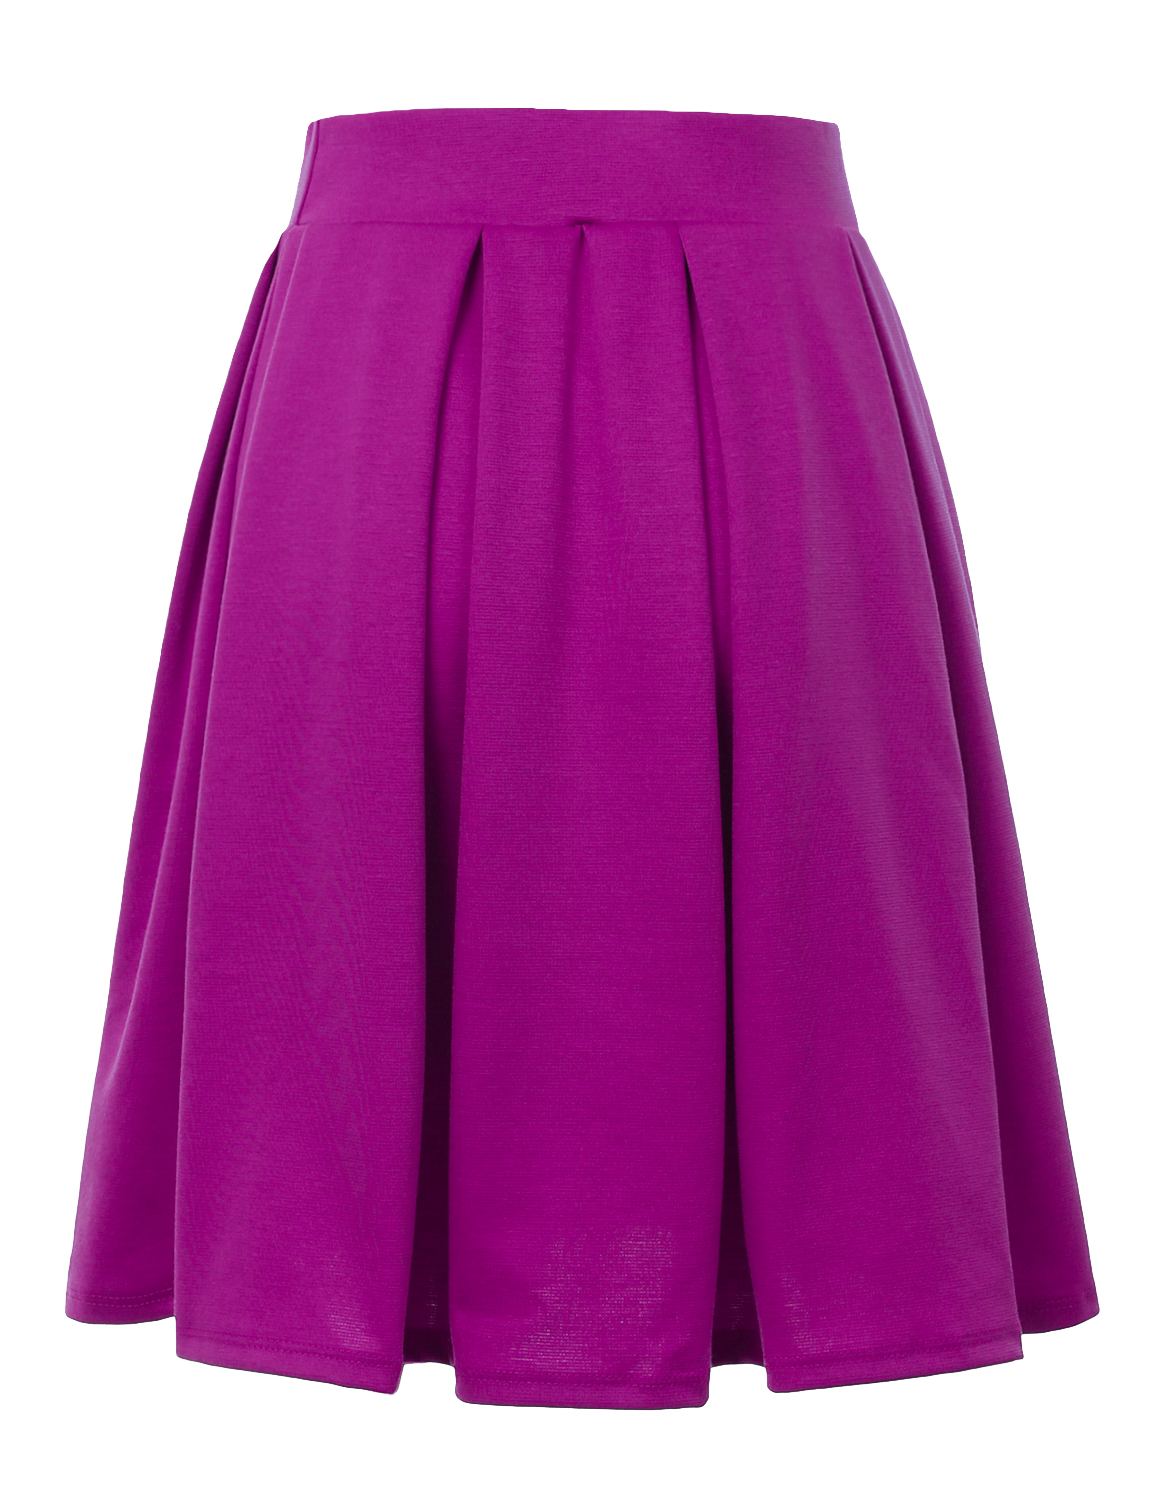 Doublju-Elastic-Waist-Flare-Pleated-Skater-Midi-Skirt-for-Women-with-Plus-Size thumbnail 33